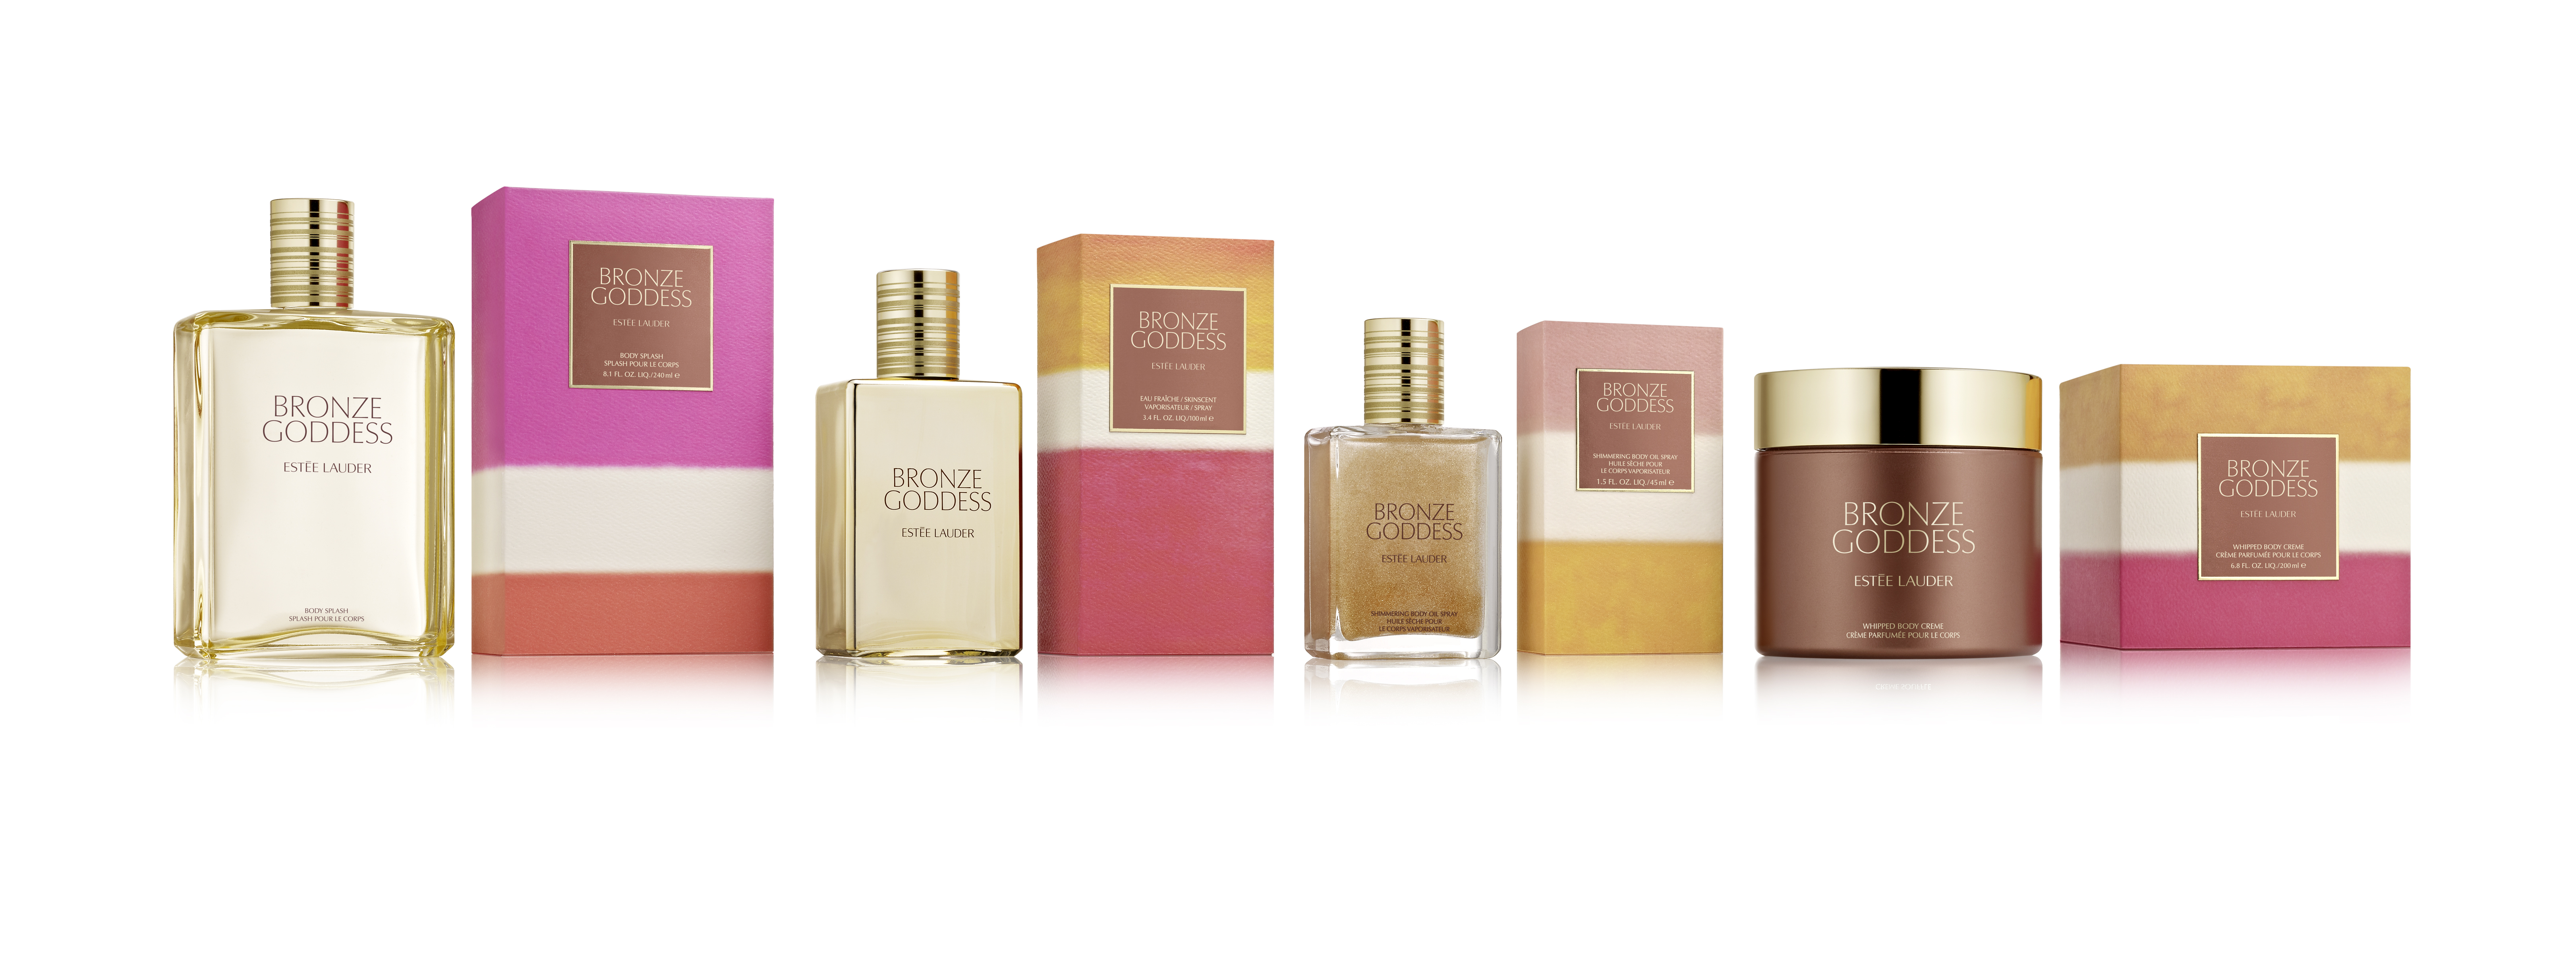 Bronze_Goddess_Fragrance_Lineup_Global_Expires_March__15